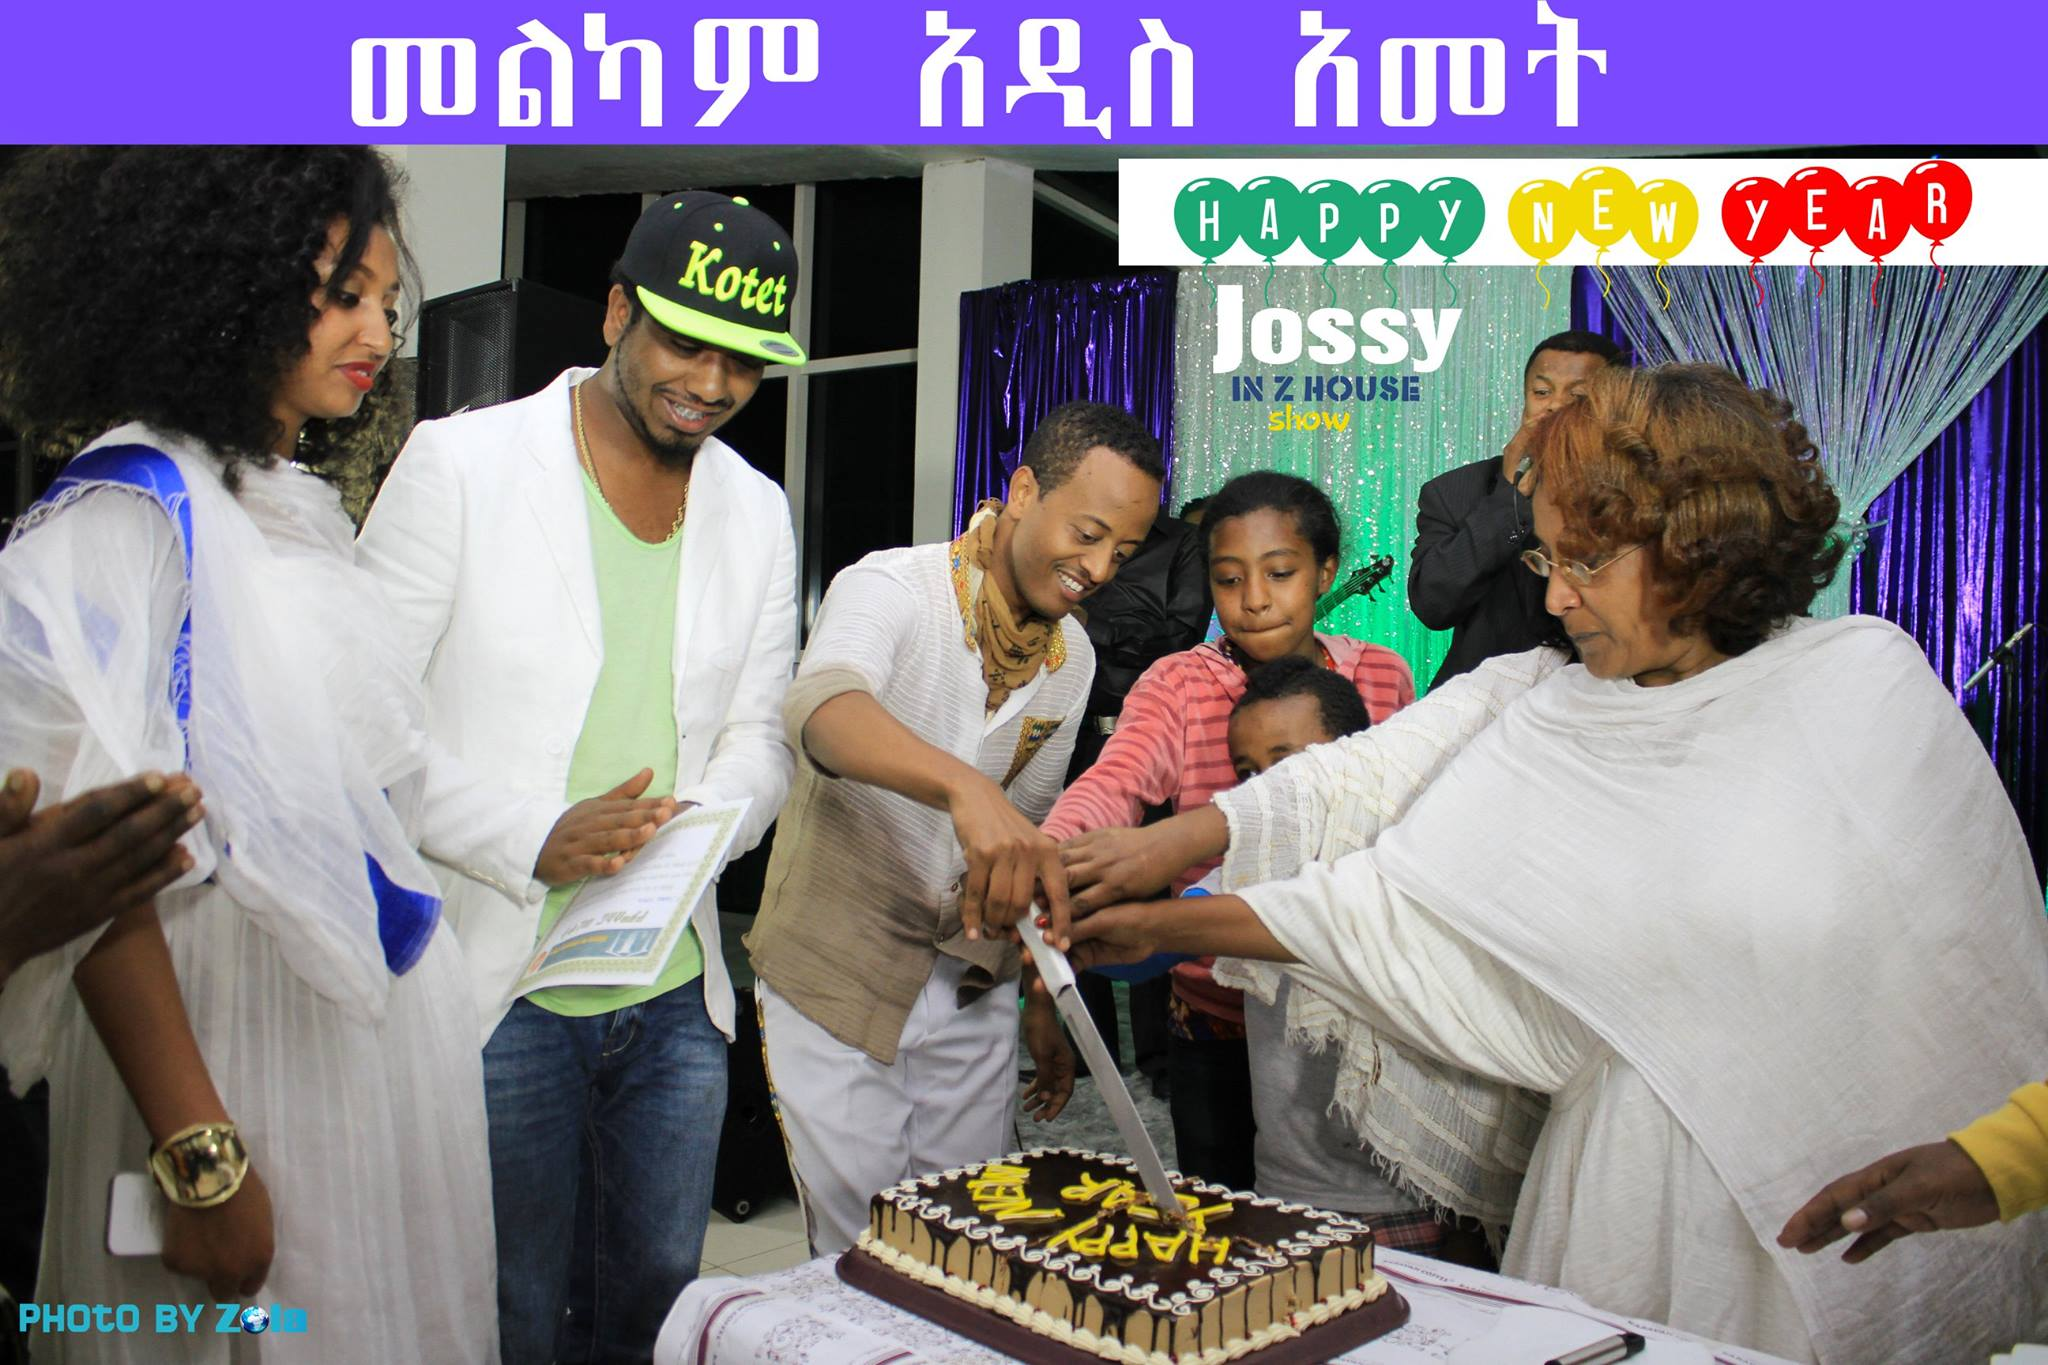 Jossy In Z House Show - NEW YEAR Special - Surprise Visit at Alebachew Teka Family